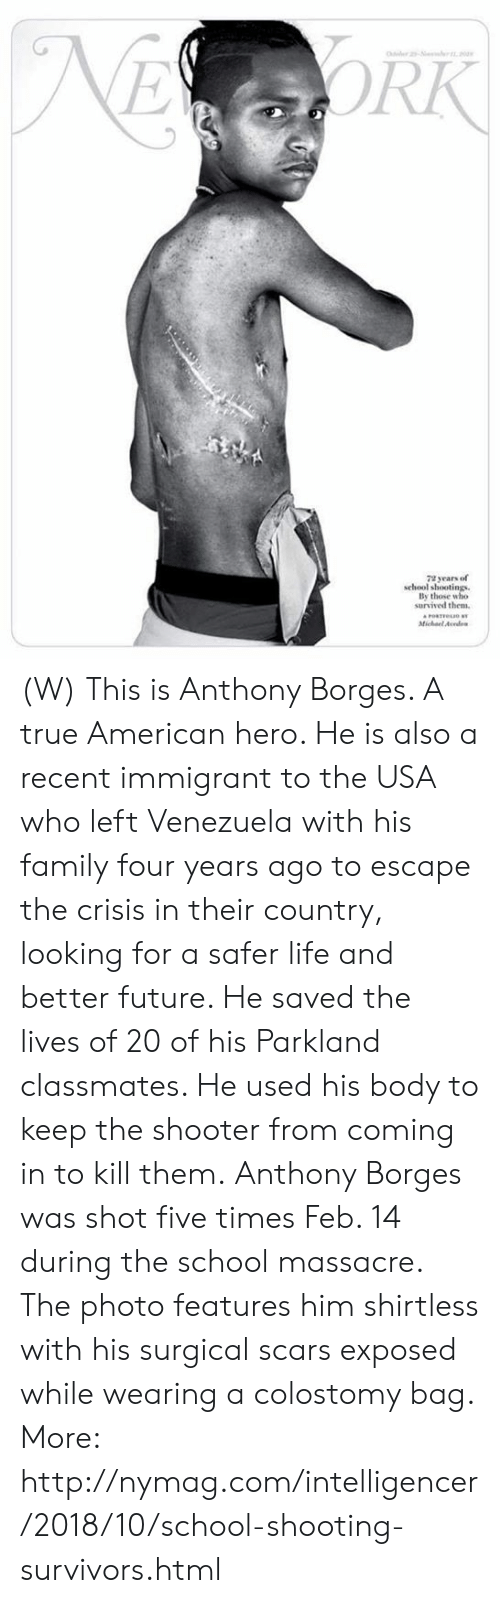 Family, Future, and Life: RK  72 years of  school shootings  By those who  survived the  Micael Aondes (W) This is Anthony Borges. A true American hero.   He is also a recent immigrant to the USA who left Venezuela with his family four years ago to escape the crisis in their country, looking for a safer life and better future.   He saved the lives of 20 of his Parkland classmates. He used his body to keep the shooter from coming in to kill them.  Anthony Borges was shot five times Feb. 14 during the school massacre. The photo features him shirtless with his surgical scars exposed while wearing a colostomy bag.  More: http://nymag.com/intelligencer/2018/10/school-shooting-survivors.html